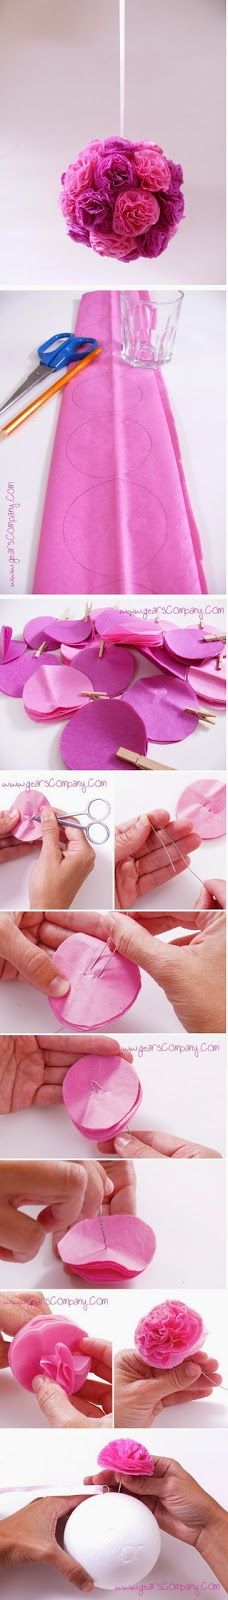 Here you will find the world& best DIY party decoration craft ideas!Making pom-poms out of paper - Rose ball Step Grab Your Craft Supplies. The pre-requisites to make this beautiful DIY Floral Craft for Decoration i. Fun Crafts, Diy And Crafts, Arts And Crafts, Budget Crafts, Decor Crafts, Party Crafts, Art Decor, Flower Crafts, Diy Flowers